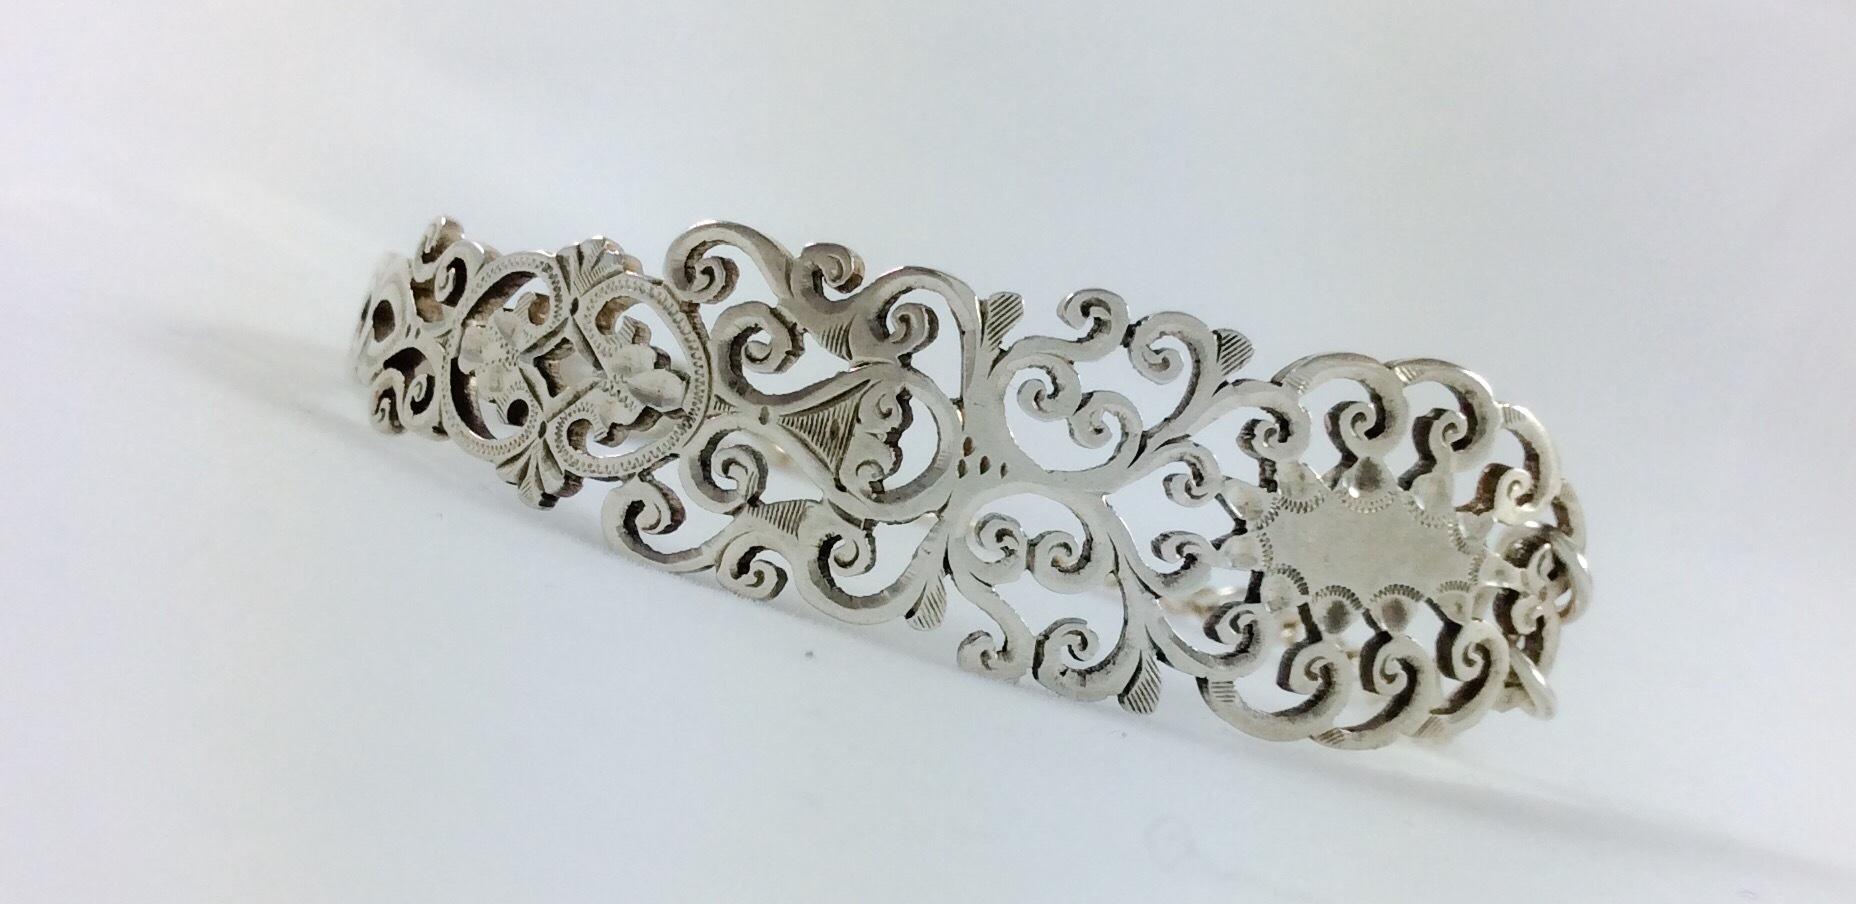 Ornate filigree sterling silver spoon bracelet